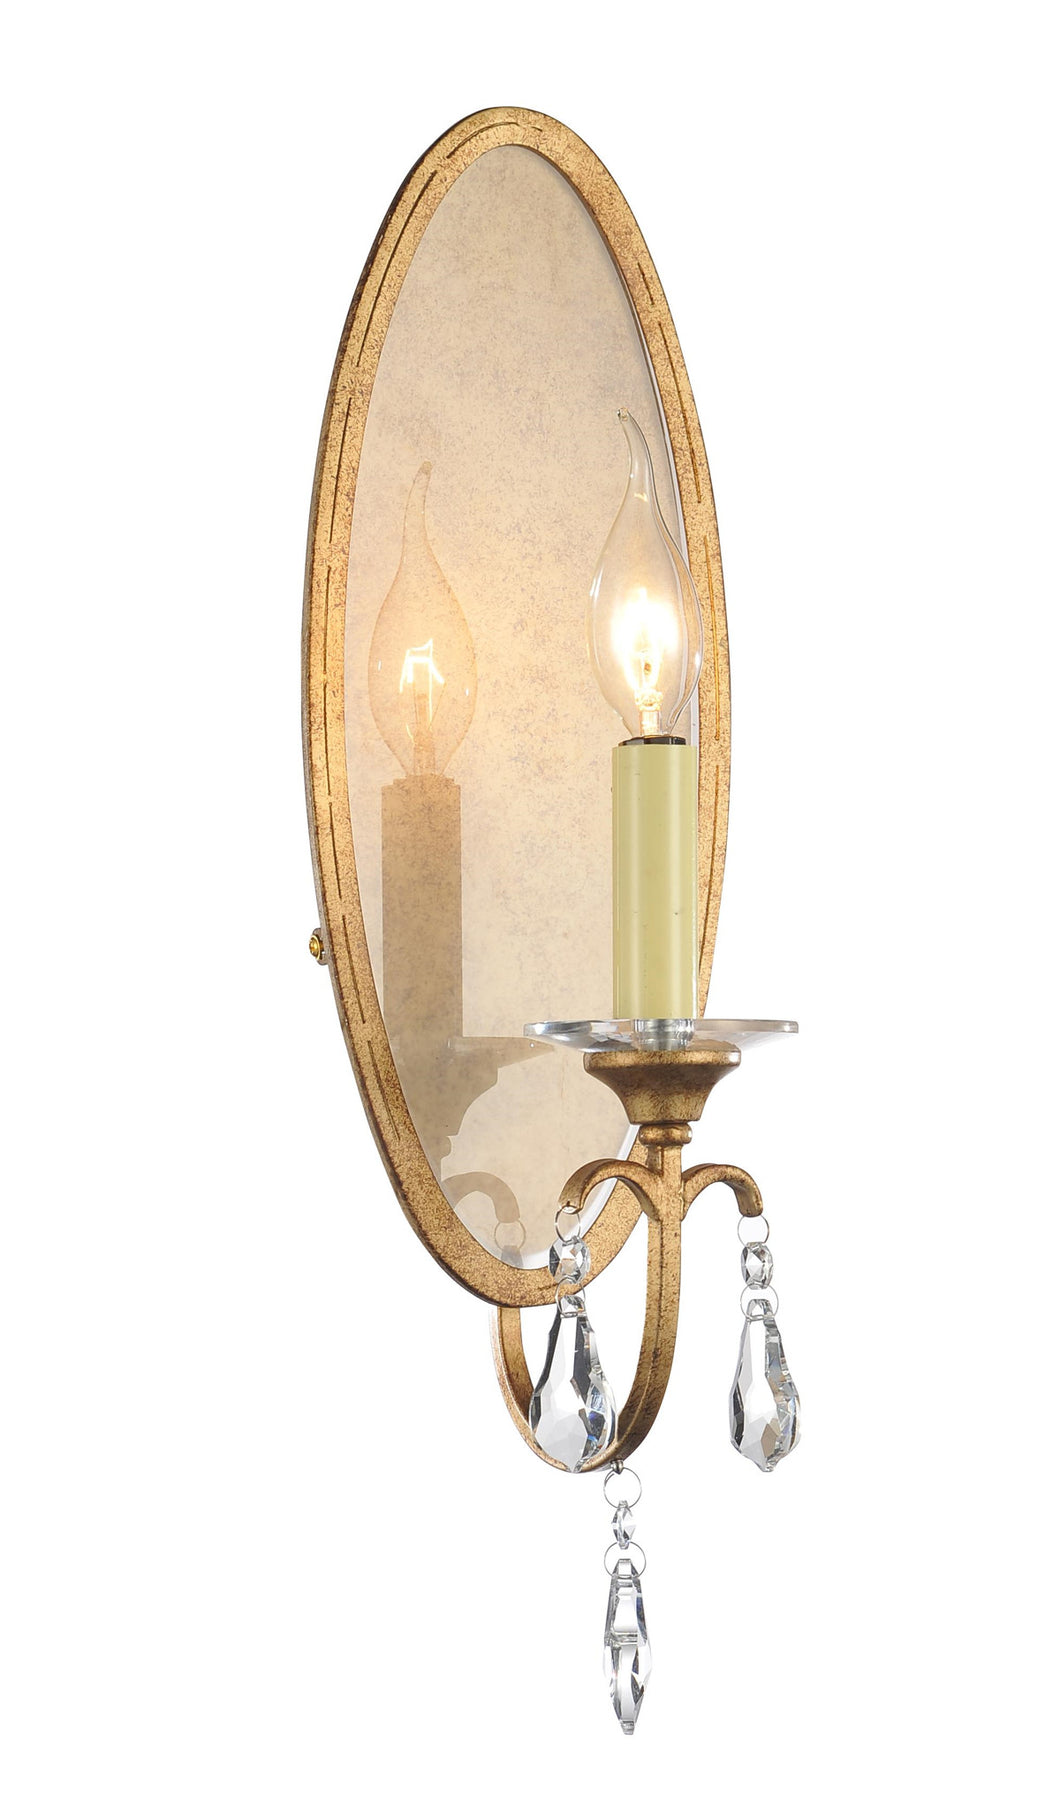 1 Light Wall Sconce with Oxidized Bronze finish